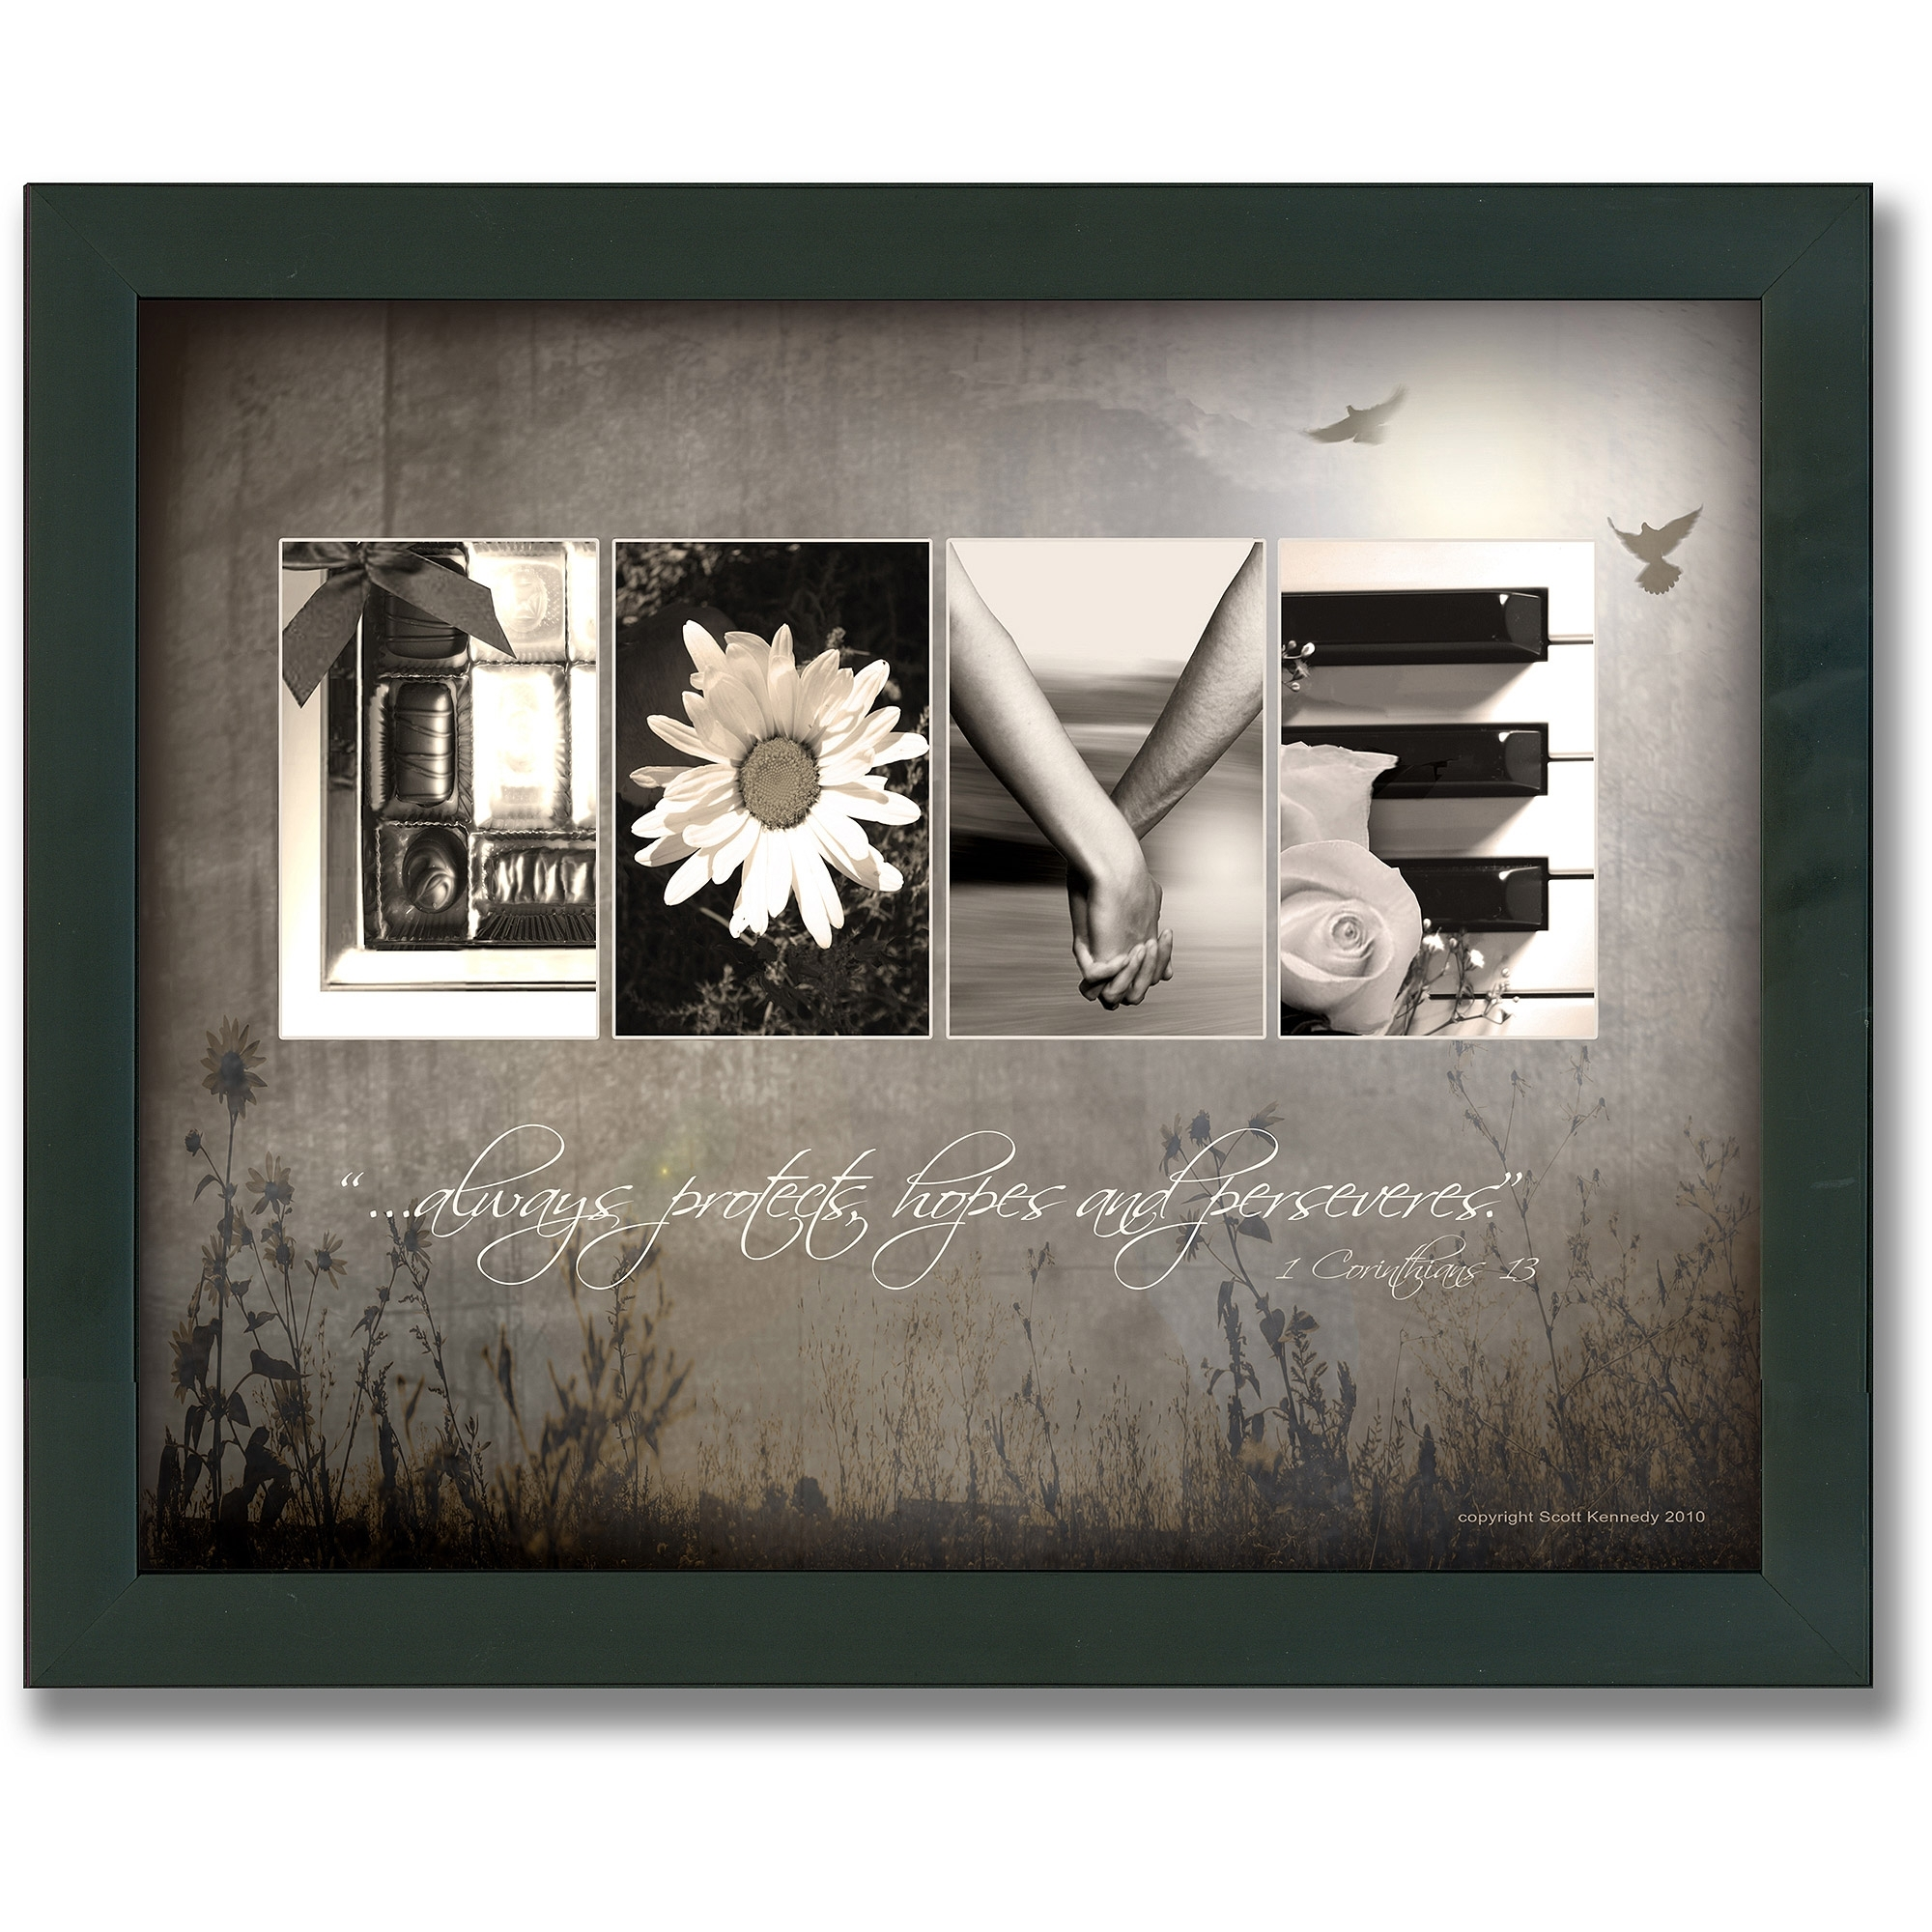 Personal Prints Love Letters Framed Canvas Wall Art – Walmart Pertaining To 2018 Canvas Wall Art At Walmart (View 10 of 15)